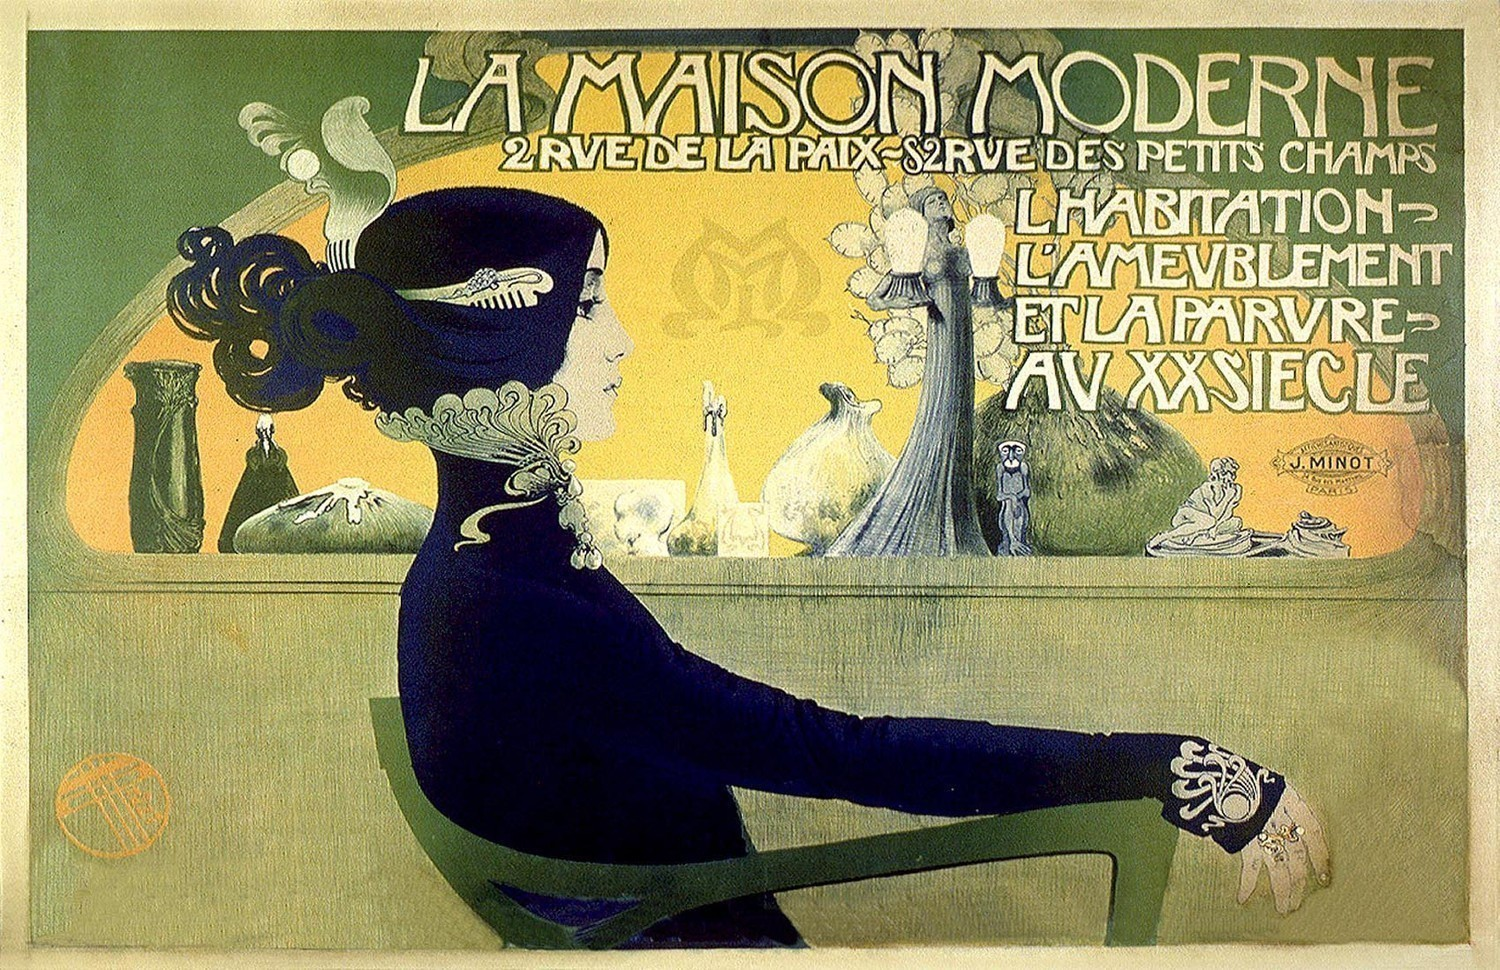 french art nouveau advertising poster